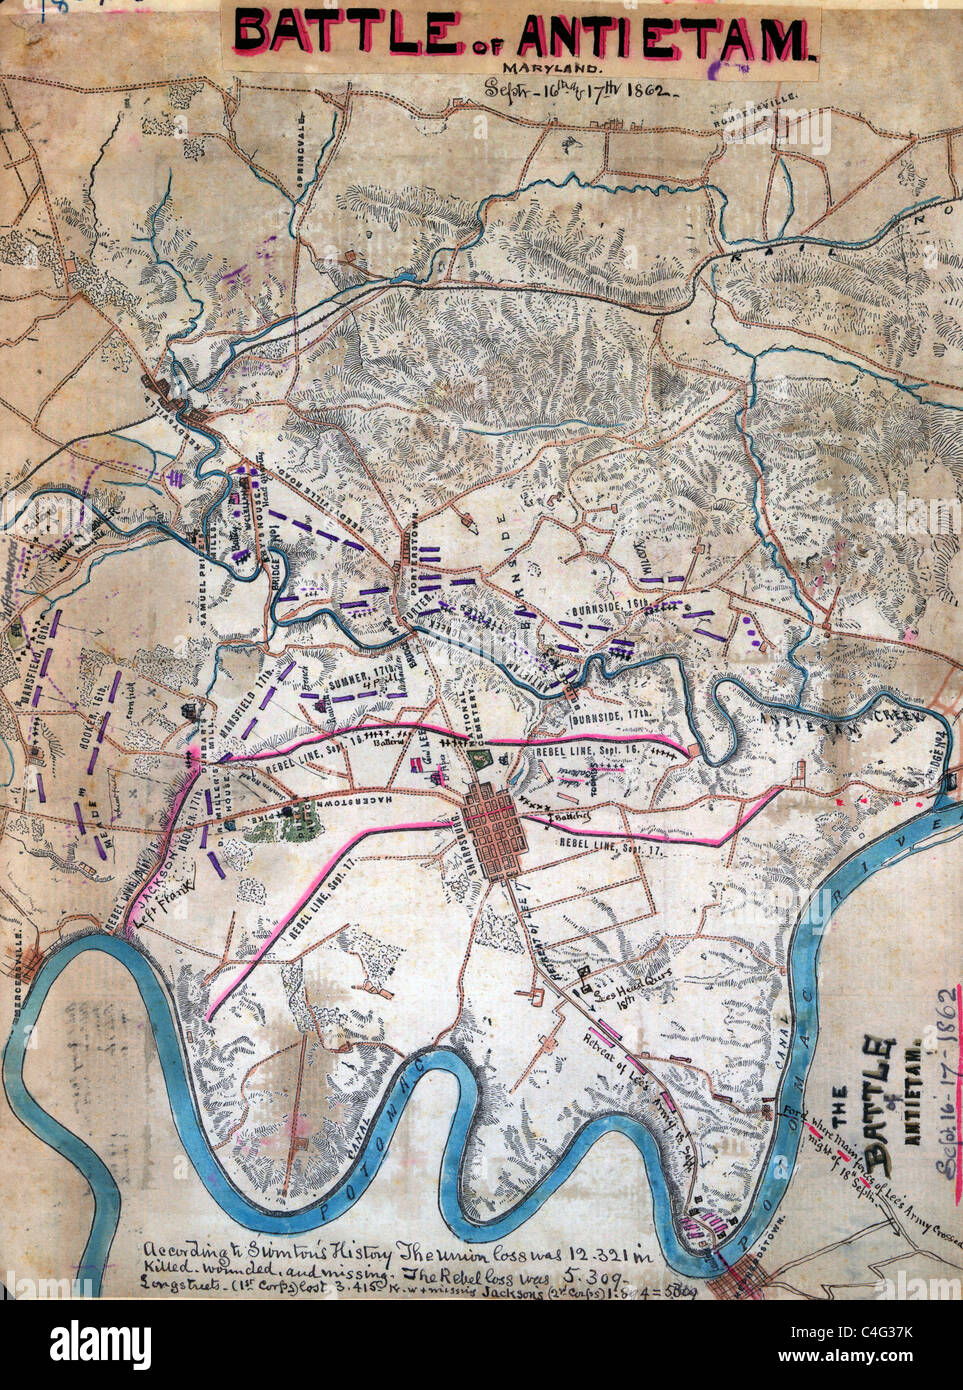 Map of Battle of Antietam (Sharpsburg) during USA Civil War showing troop positions - Stock Image